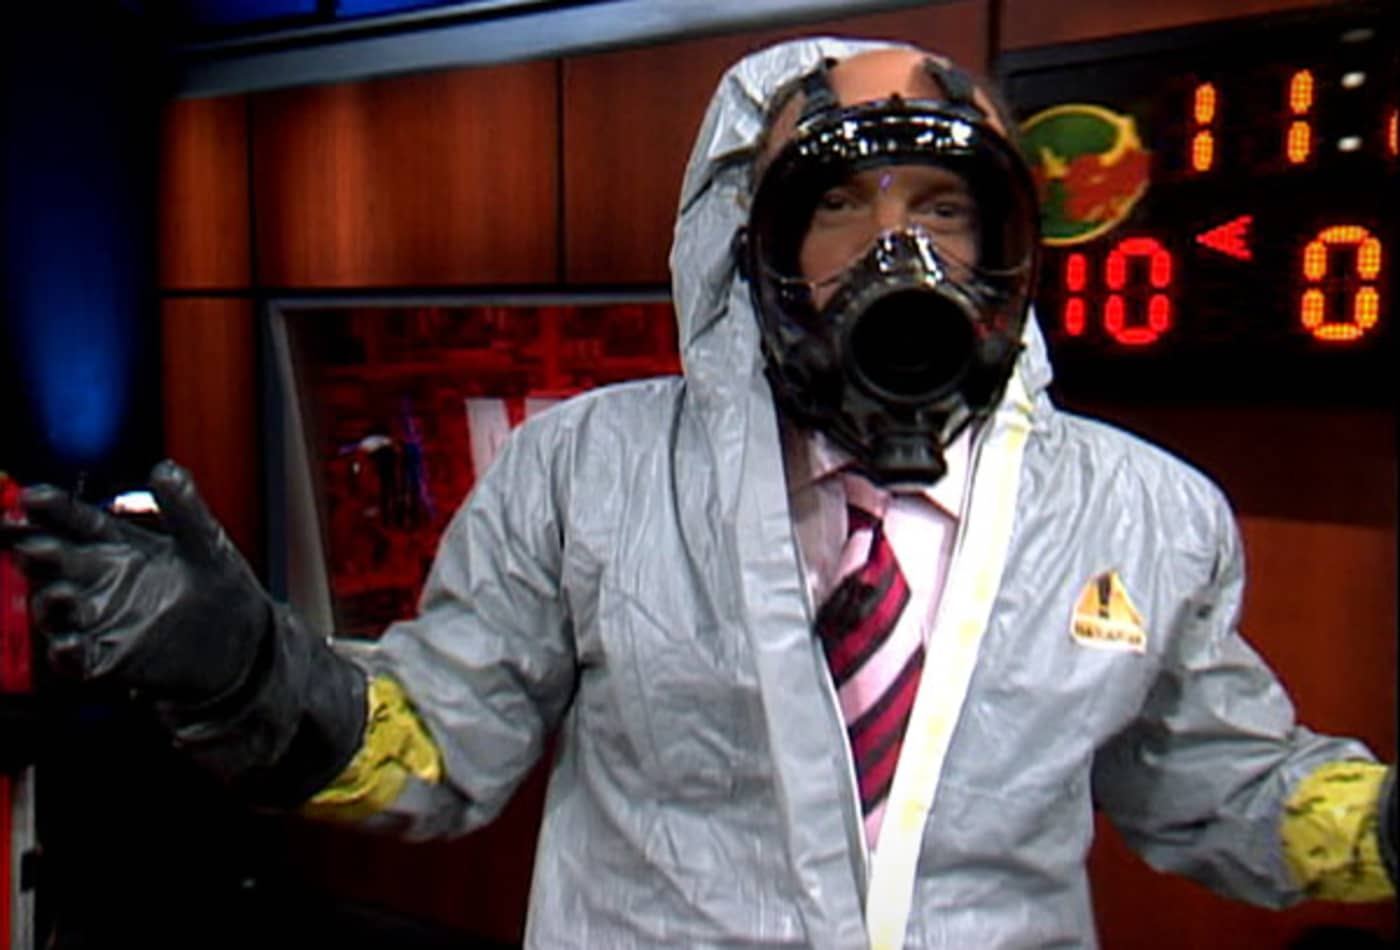 Hazmat-Craziest-Costume-Ideas-Jim-Cramer.jpg